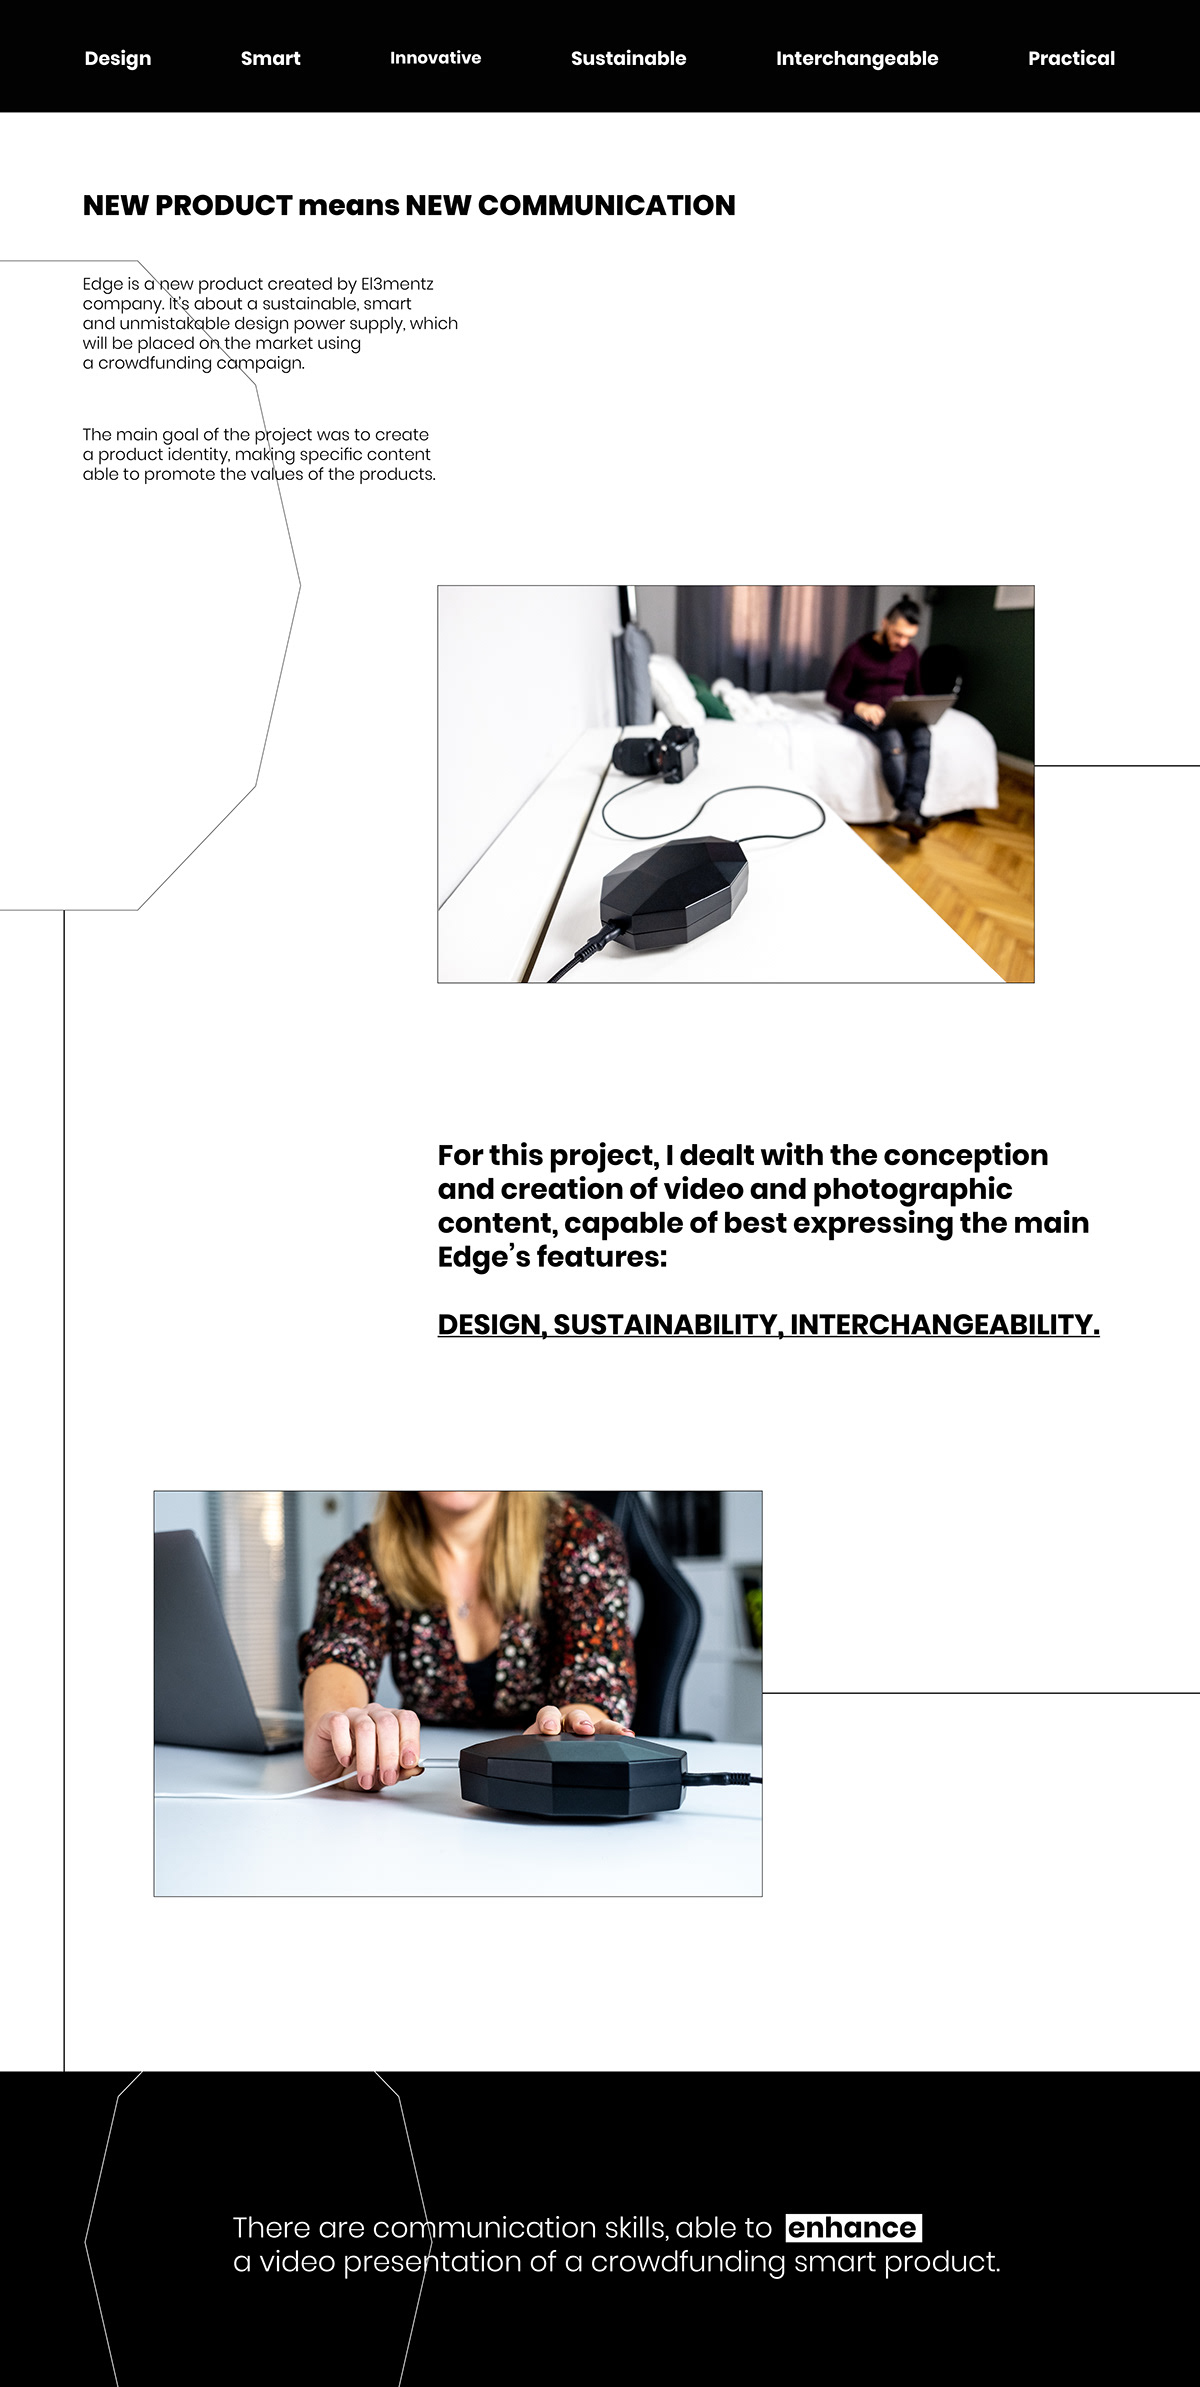 crowdfunding filmmaking photo editing post-production Product Advertising Product communication  Product Photography still-life videomaking Visual Content